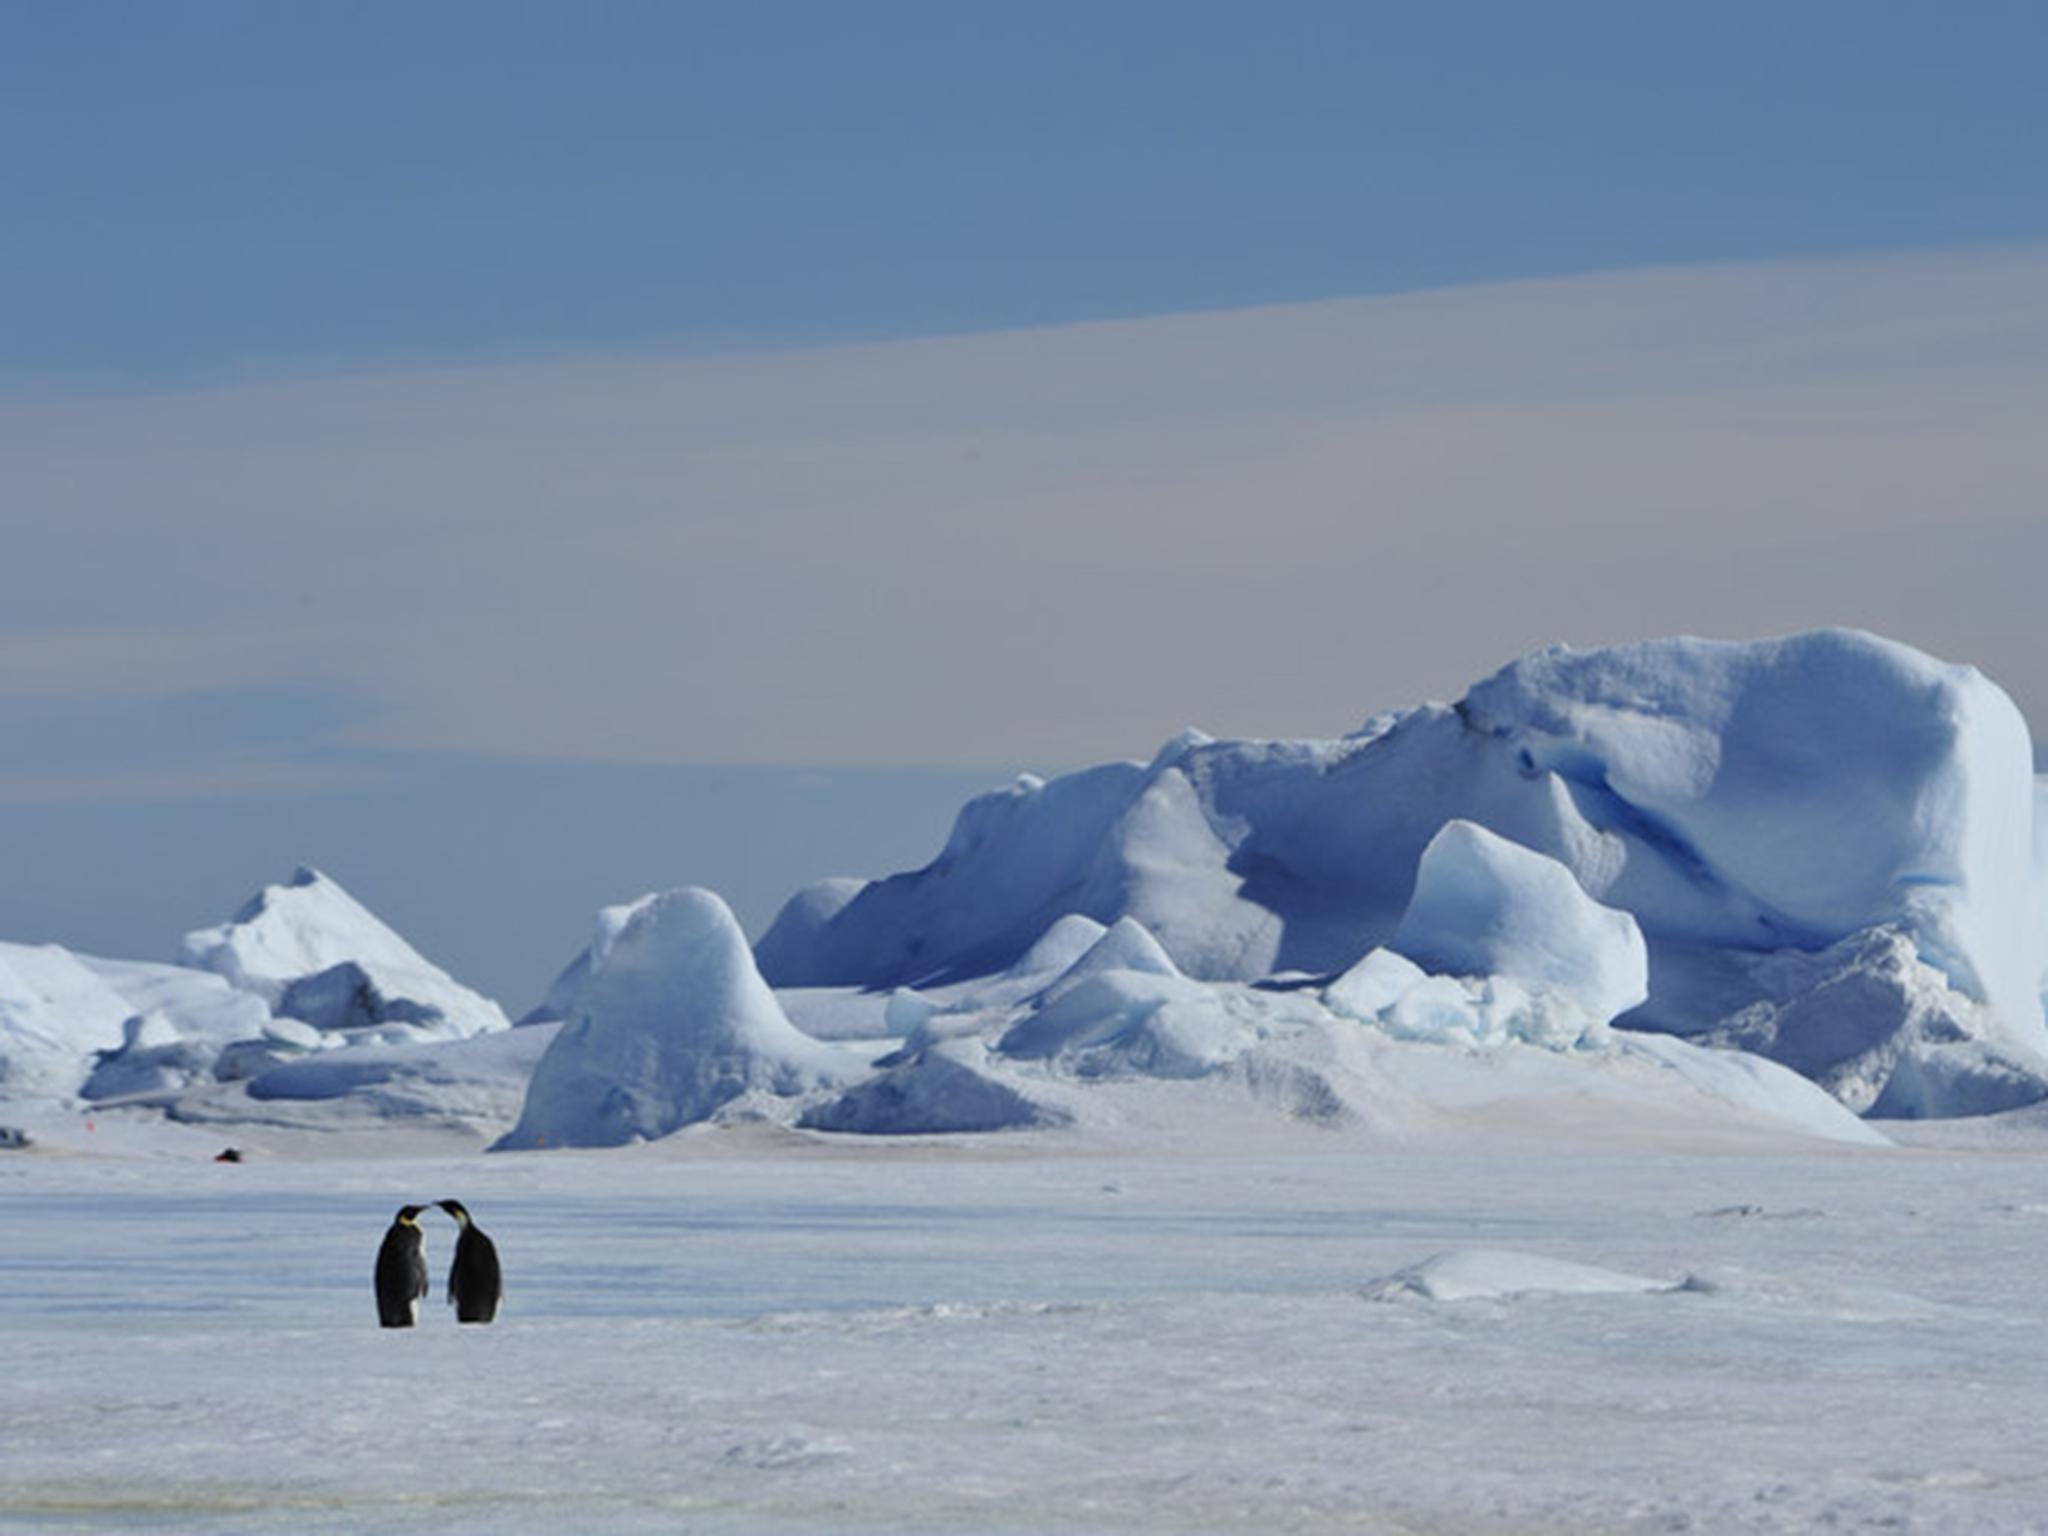 Sea ice 'to vanish from Arctic Ocean as region warming twice as fast as rest of world'